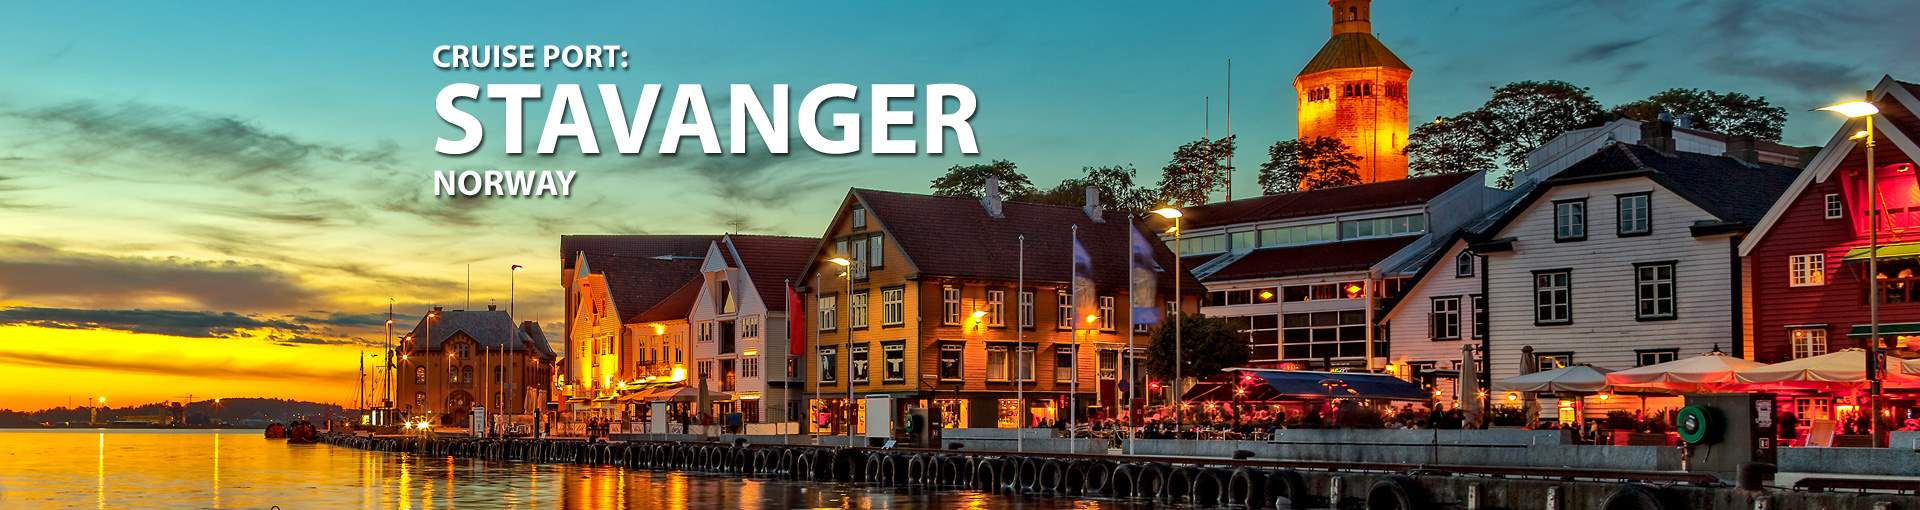 Cruises to Stavanger, Norway